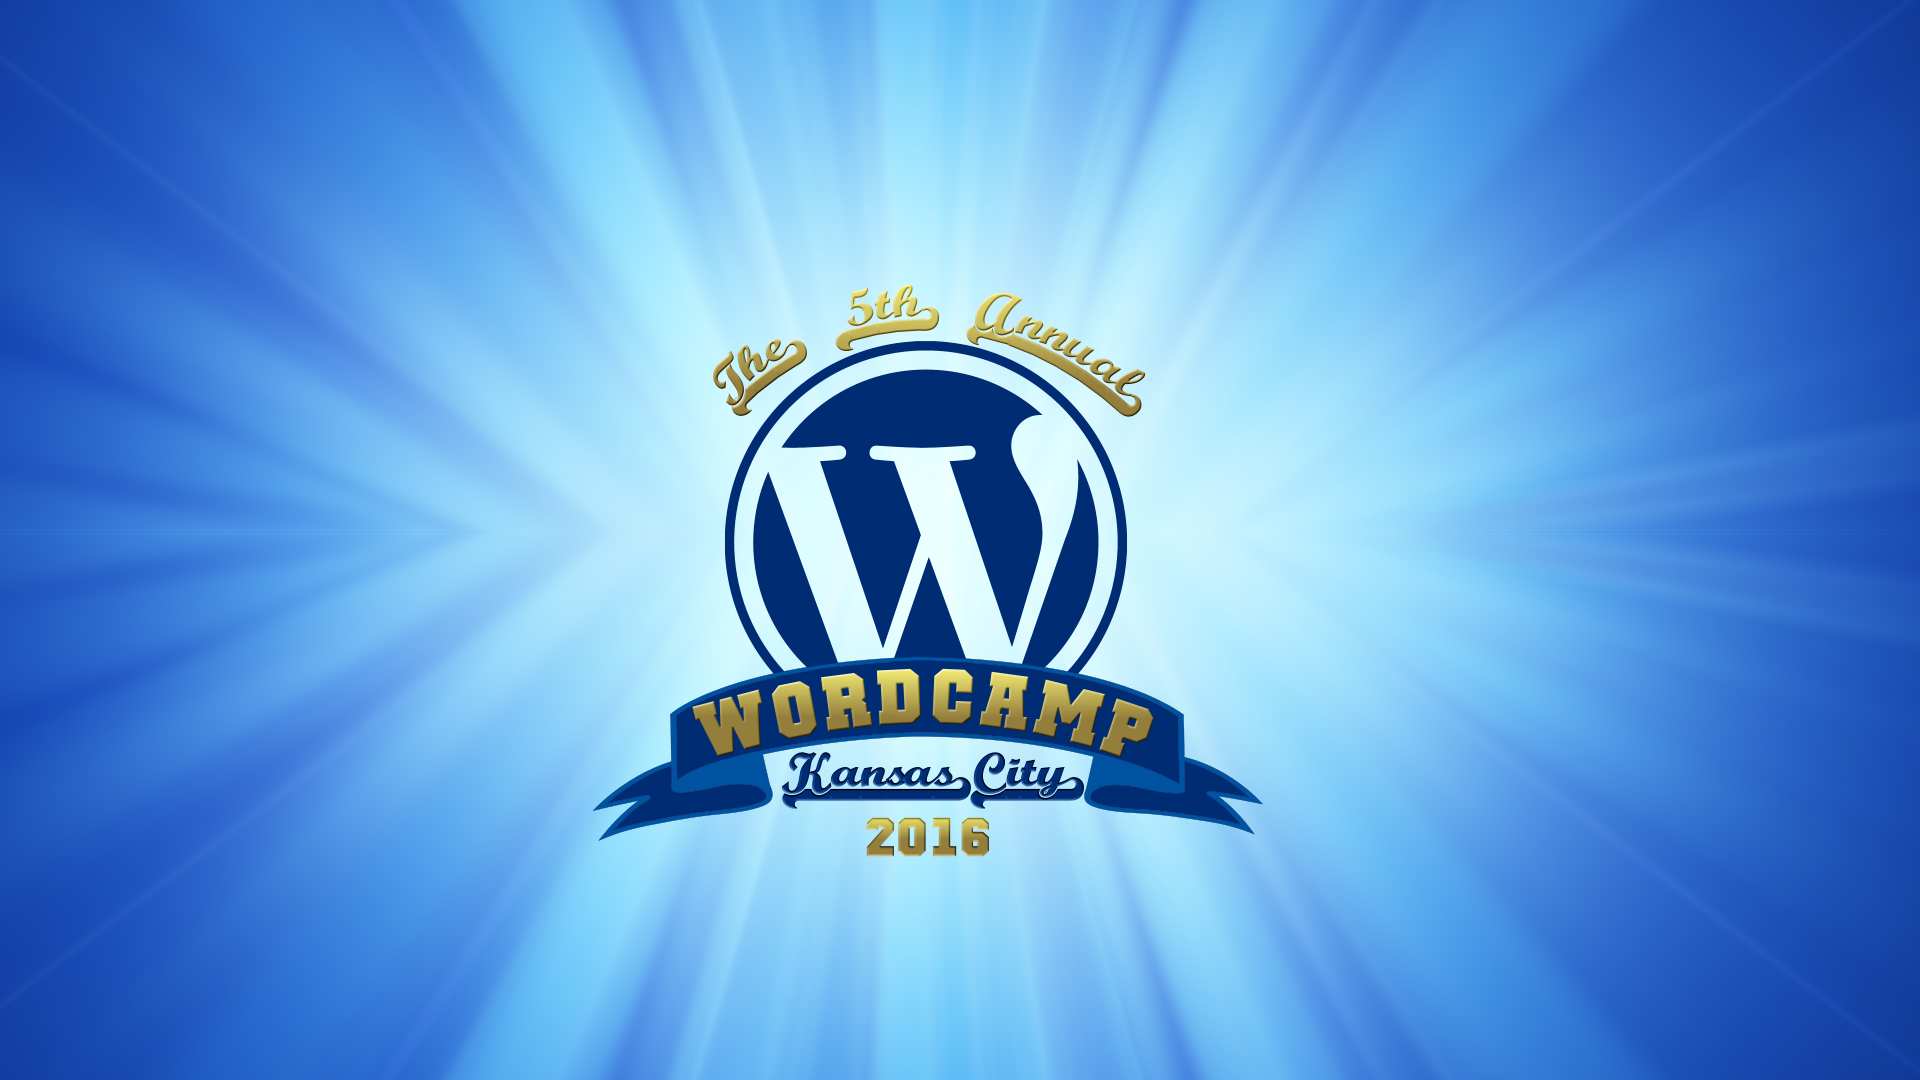 The 5th Annual WordCamp Kansas City 2016